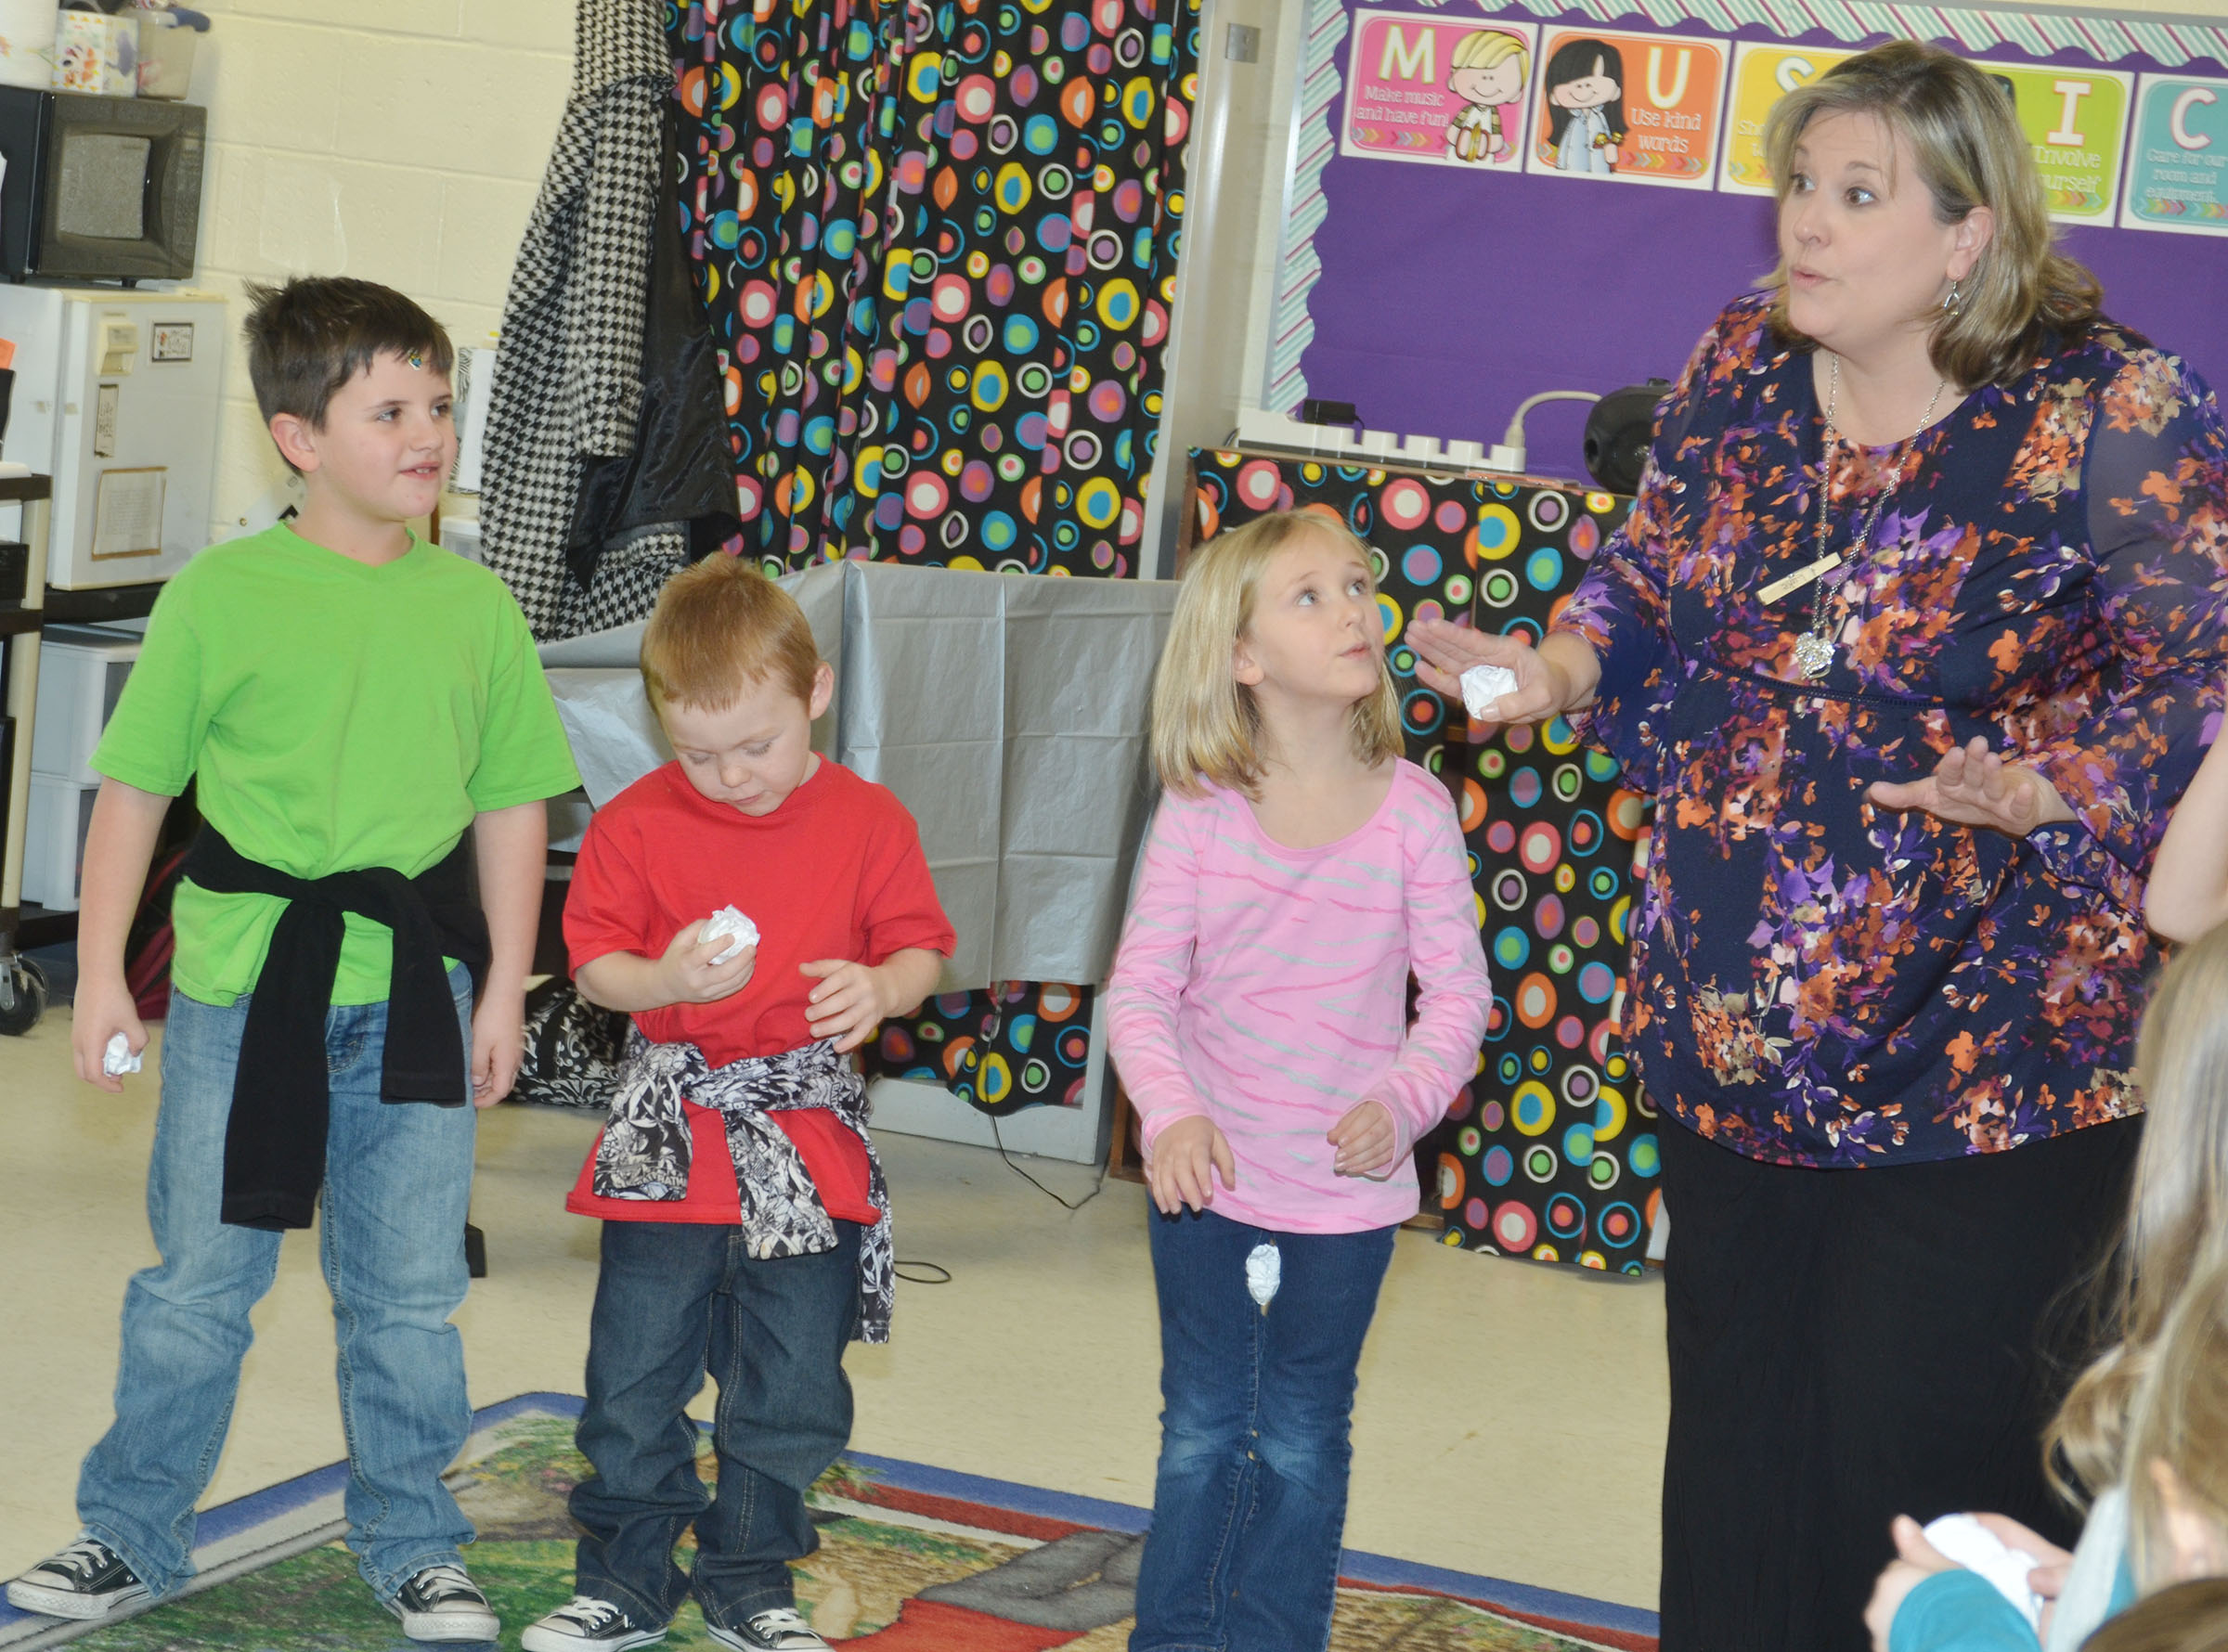 CES music teacher tells kindergarteners to sing their song about snow softly at first, and then very loud. From left are Casen Meredith, Daven Davis and LeeAnna Garvin.